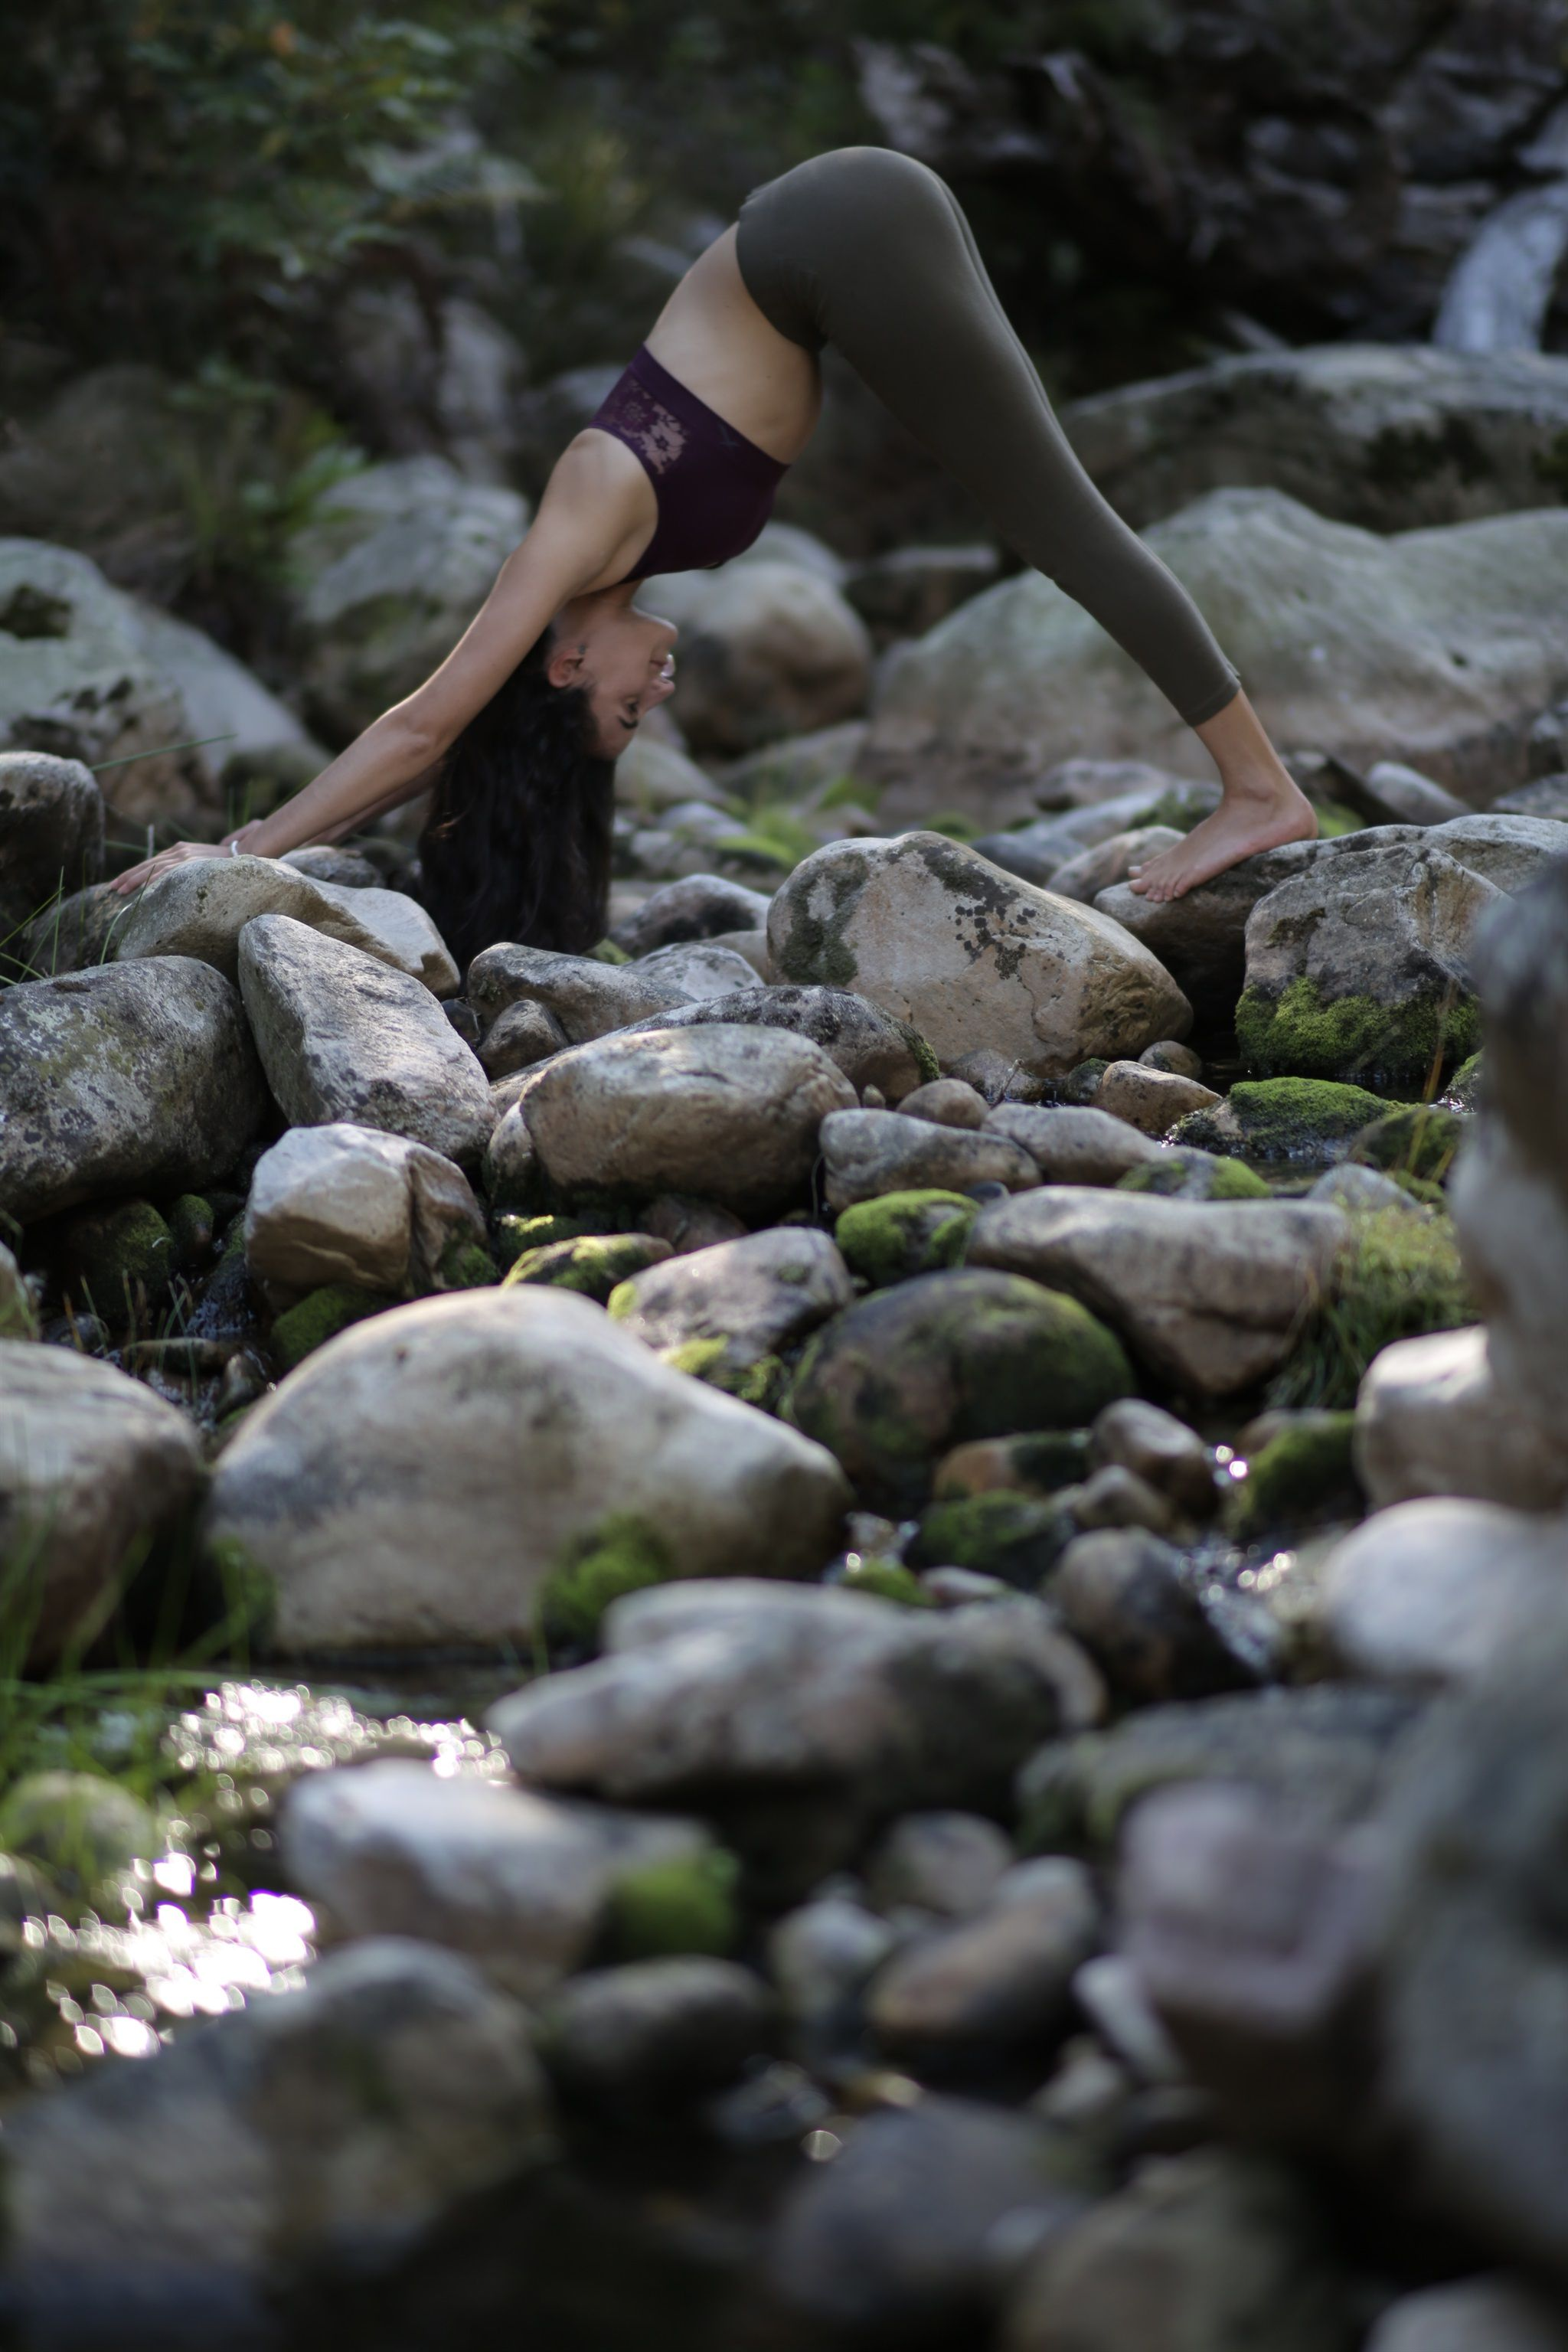 Fine Collection Adds Yoga Offering With Chloe Yoga photo